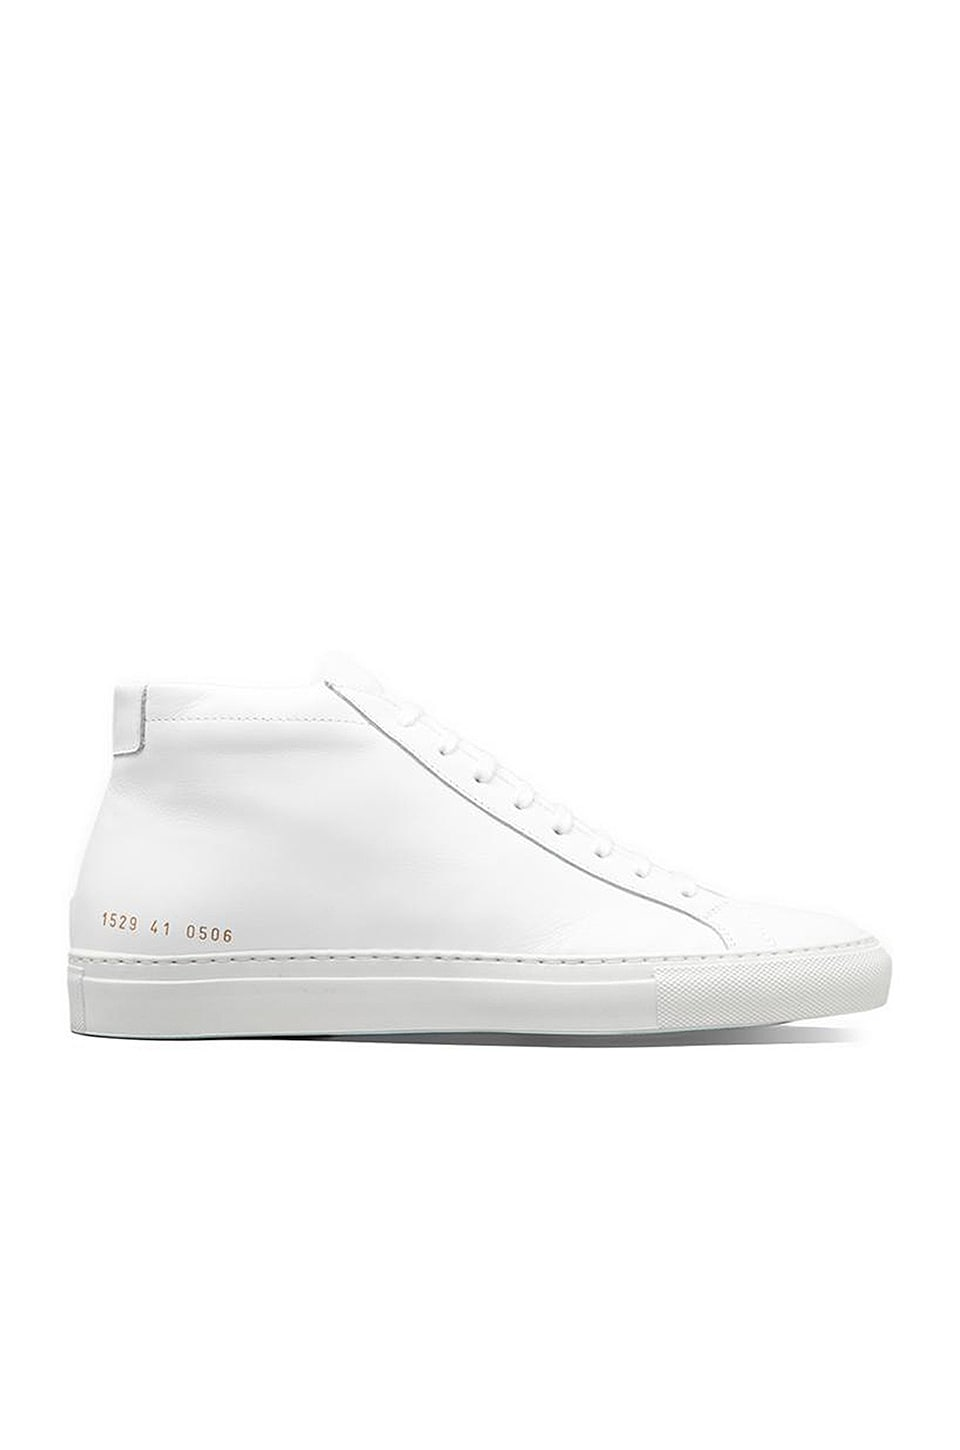 Common Projects Original Leather Achilles Mid in White